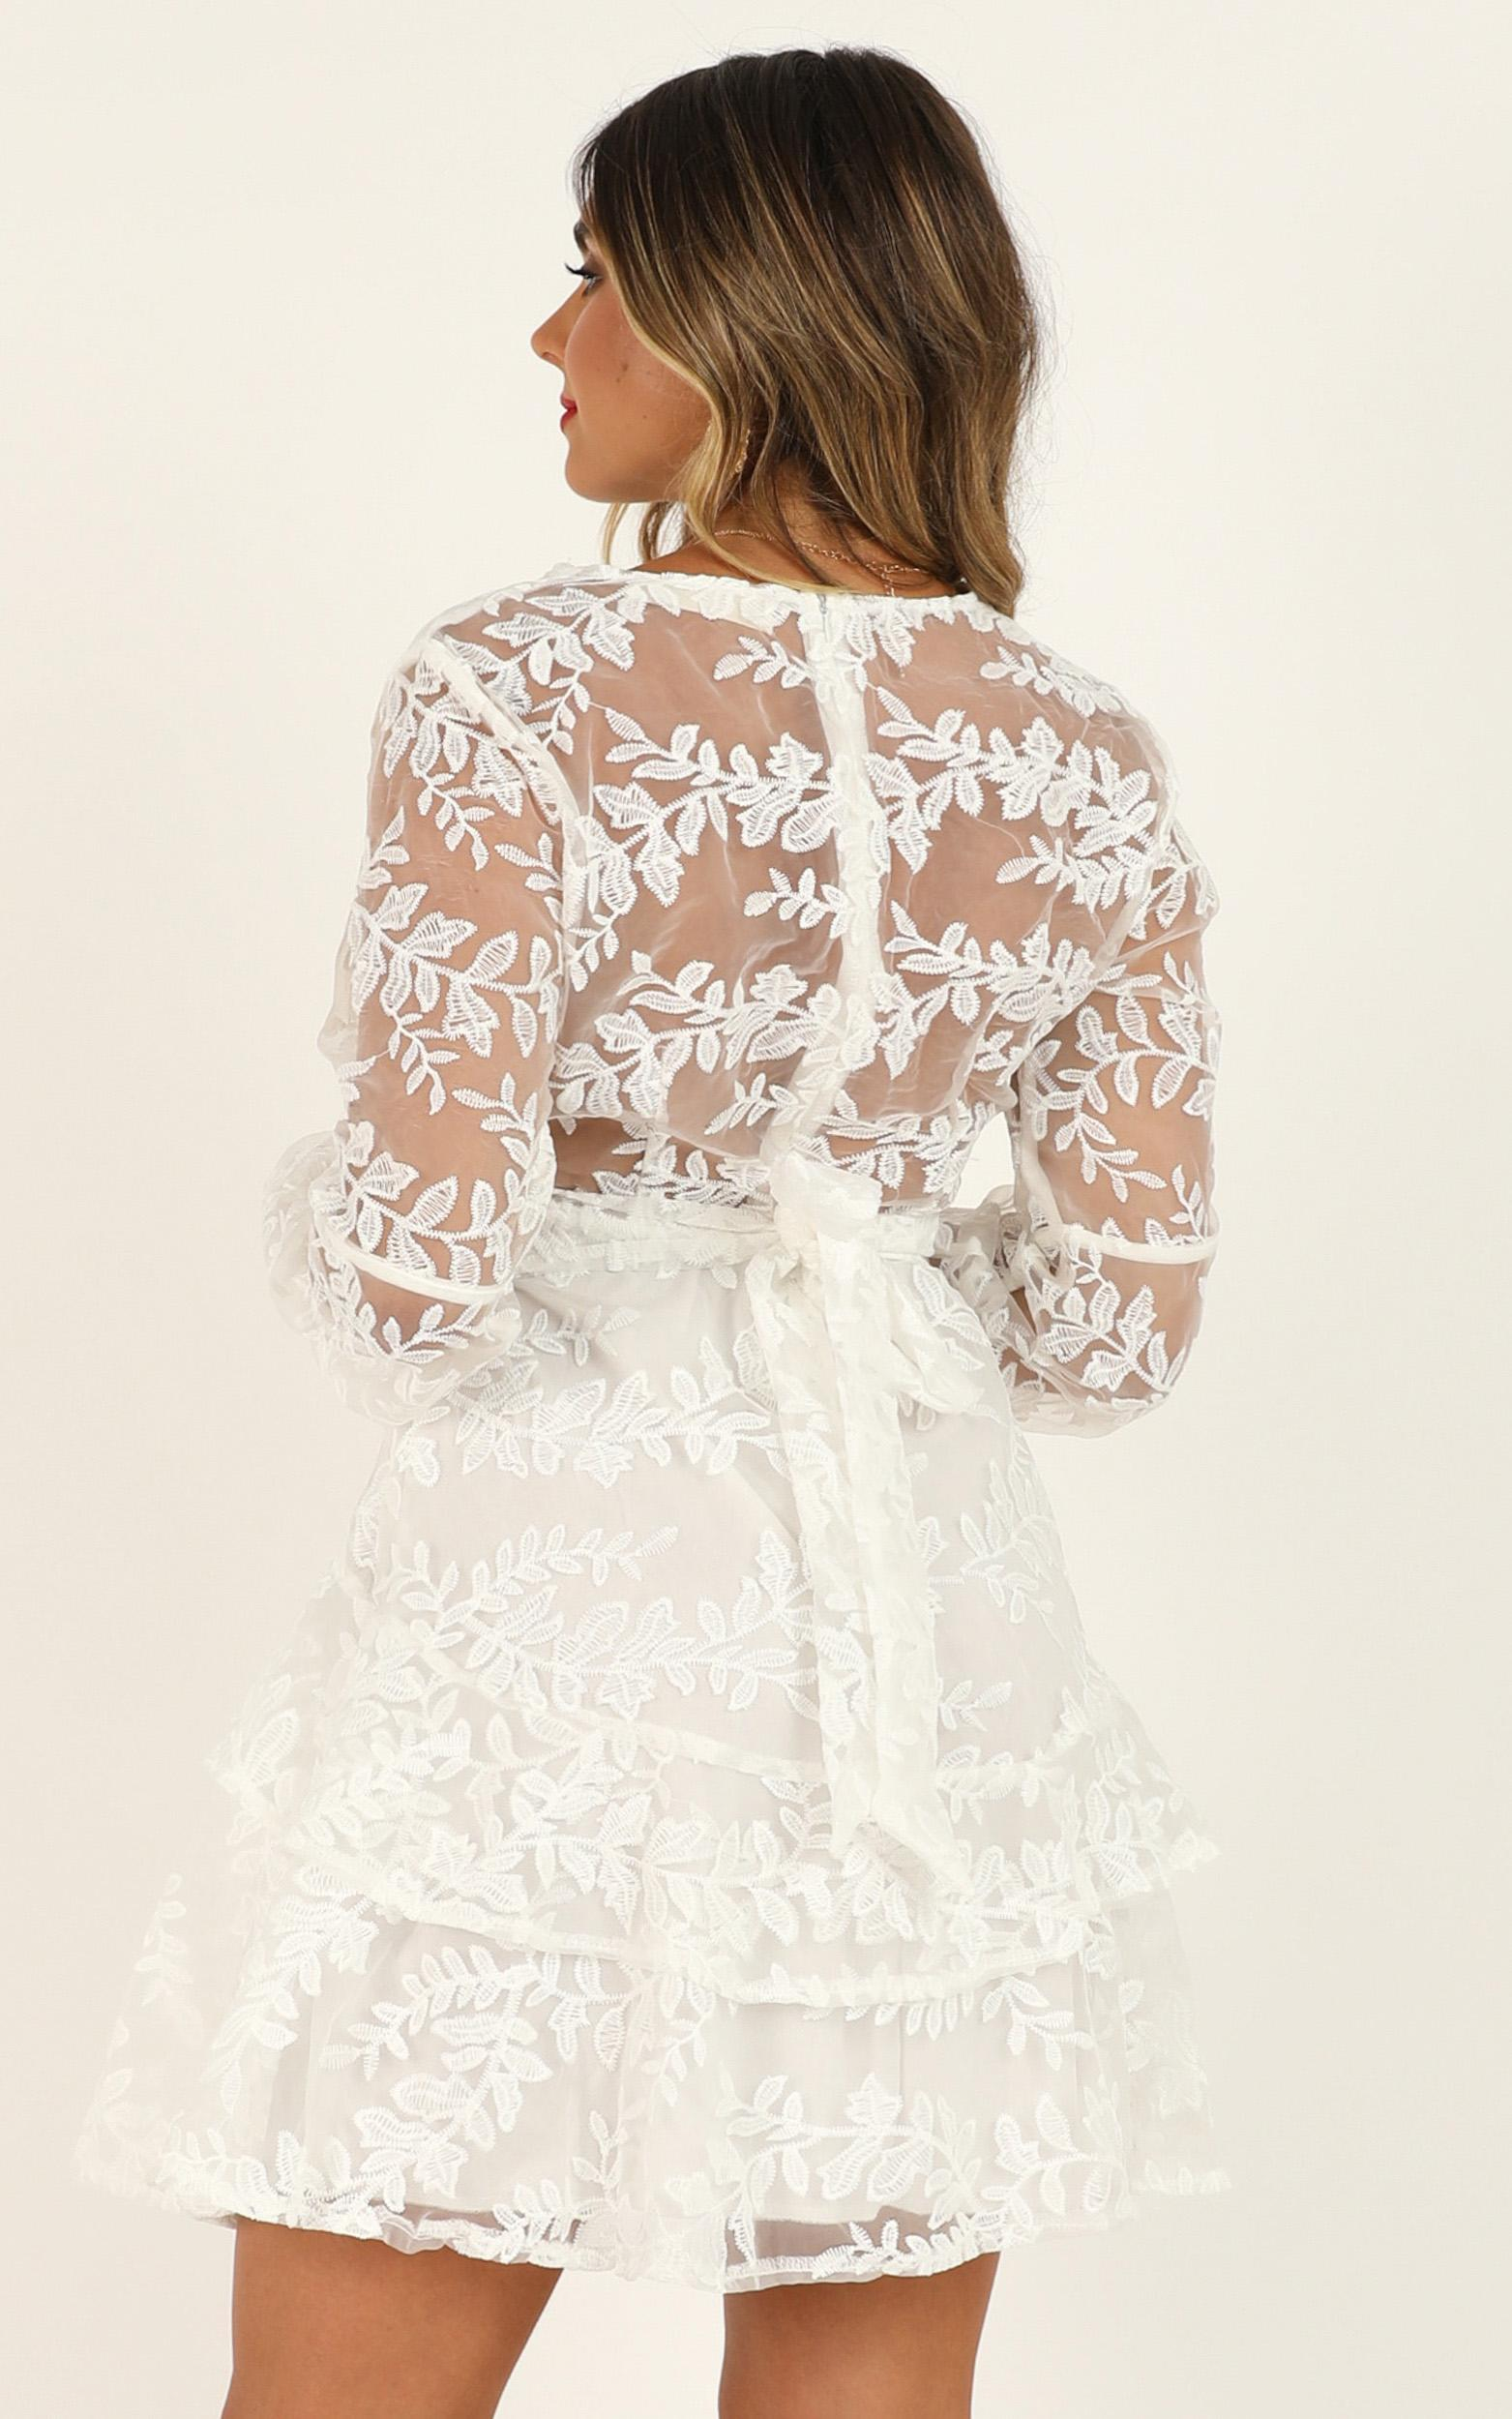 Magnolia Dreams dress in white lace - 12 (L), White, hi-res image number null